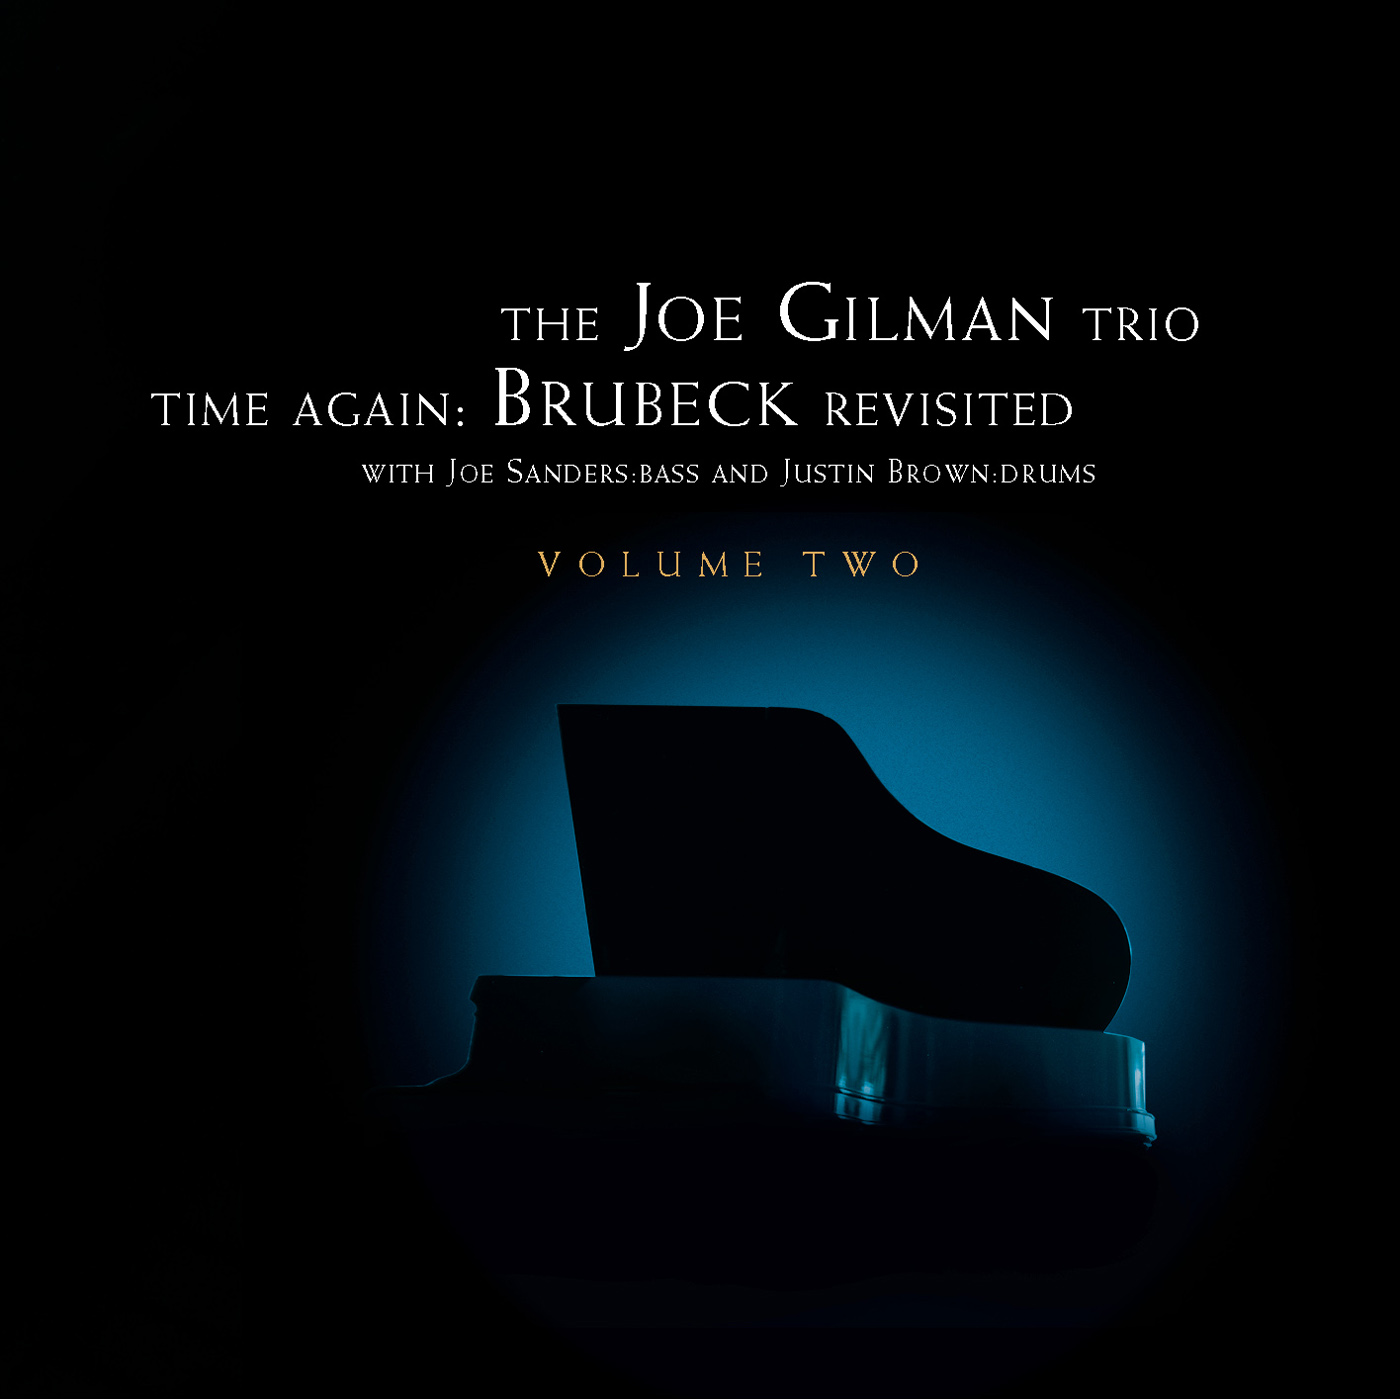 Time Again: Dave Brubeck Revisited - Vol 2 by Joe Gilman